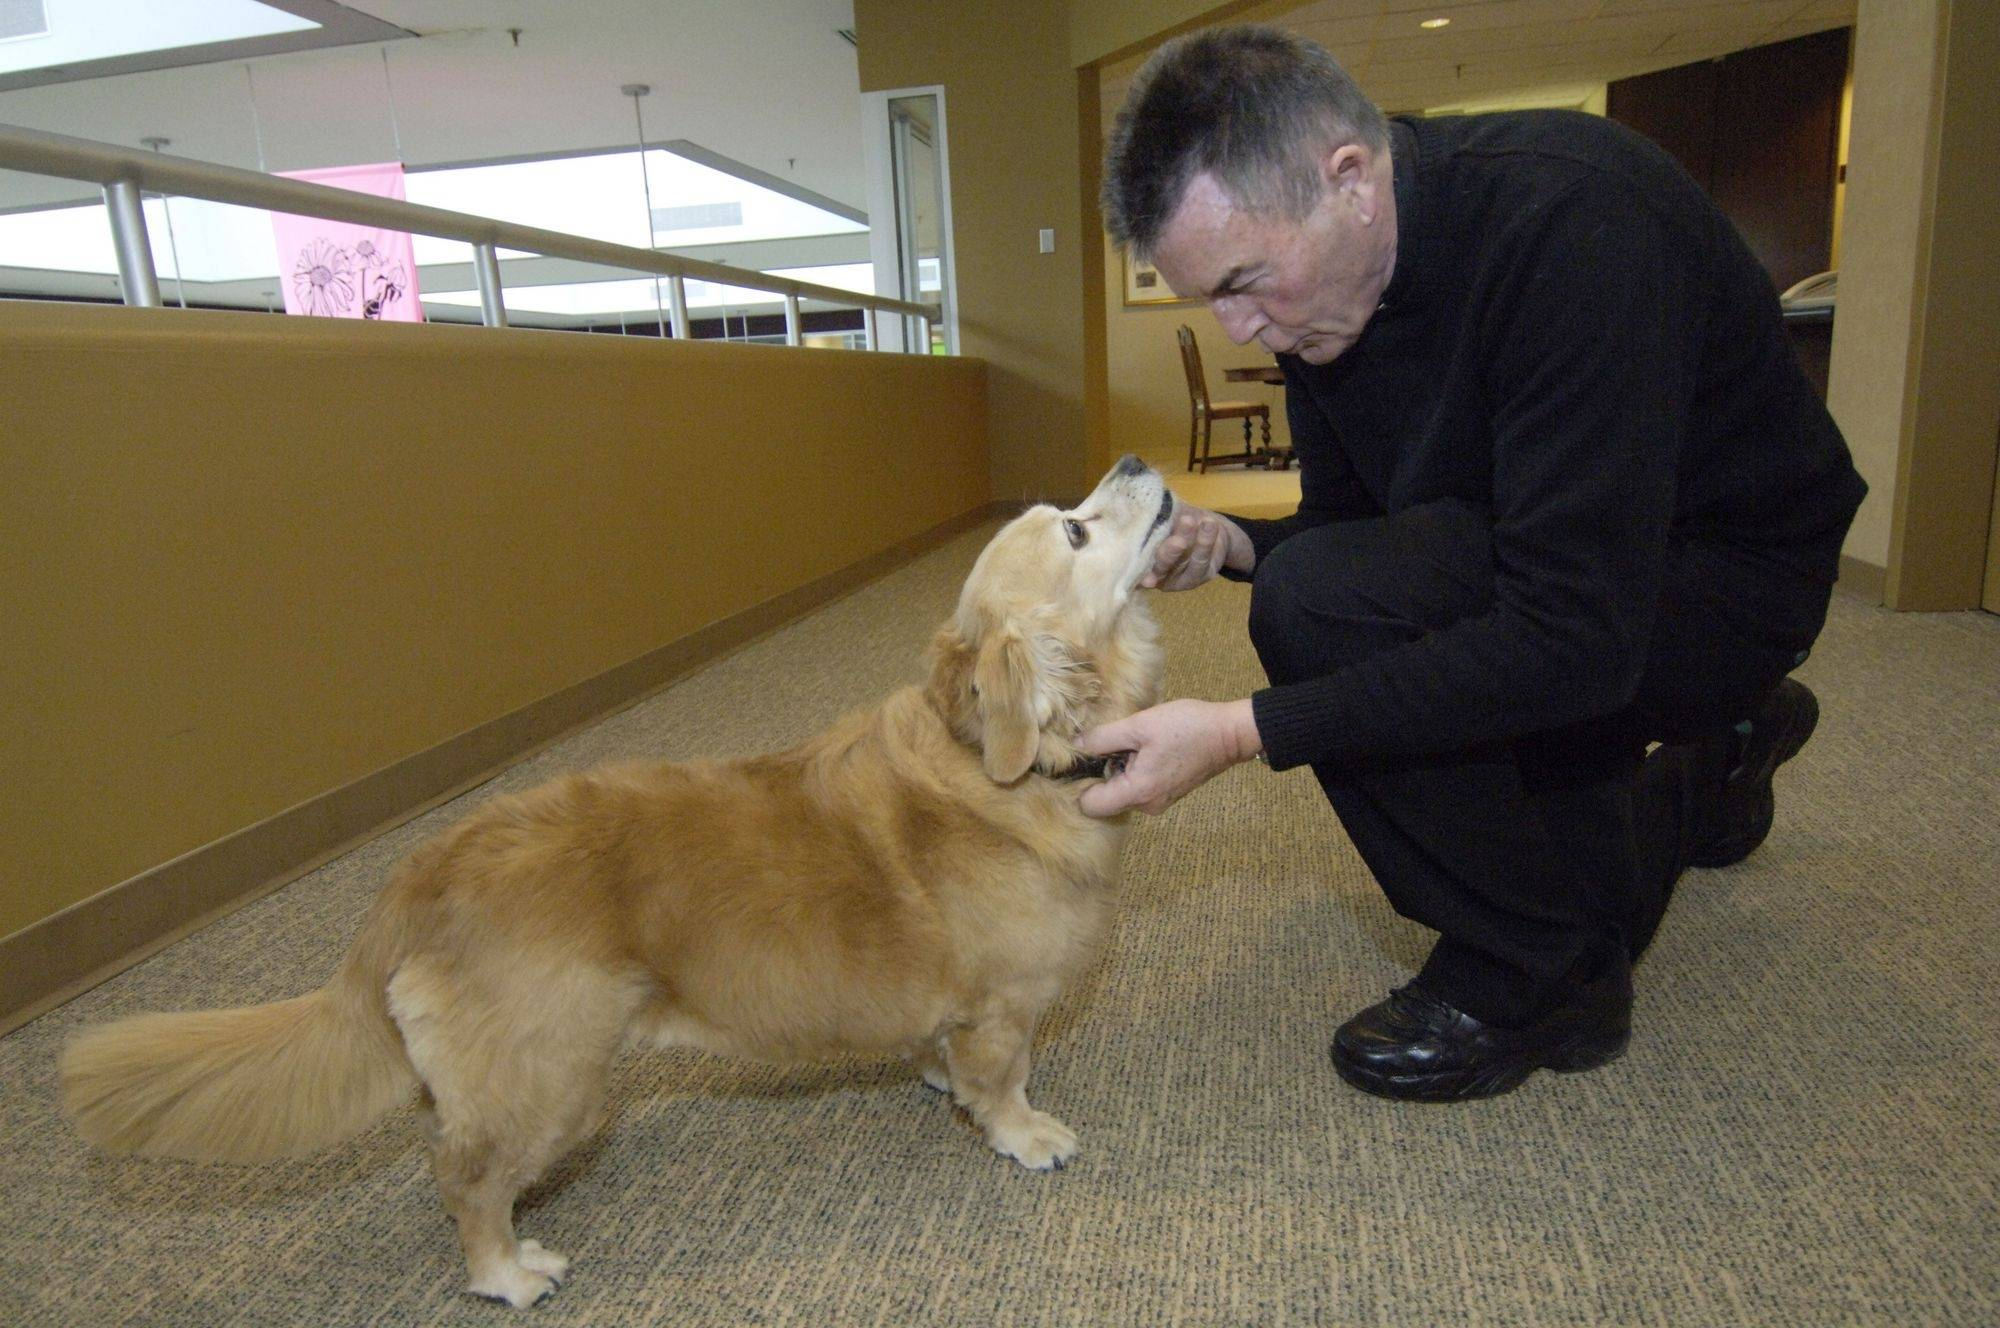 Br. Jim Classon of the Alexian Brothers stops to pet Mitzi as they go about their daily work routine.